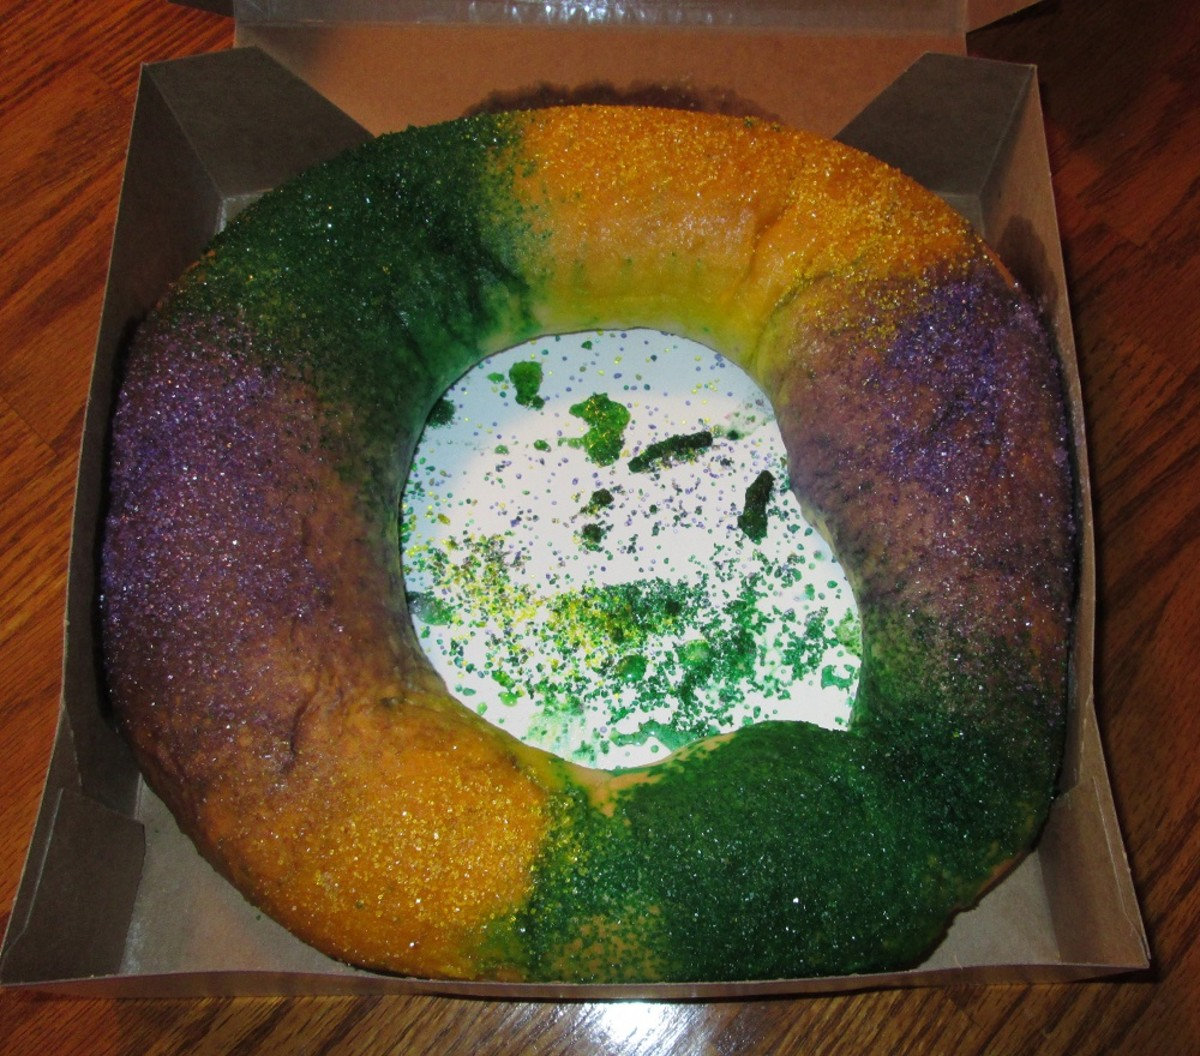 The King Cake is really a fairly simple, sweet treat.